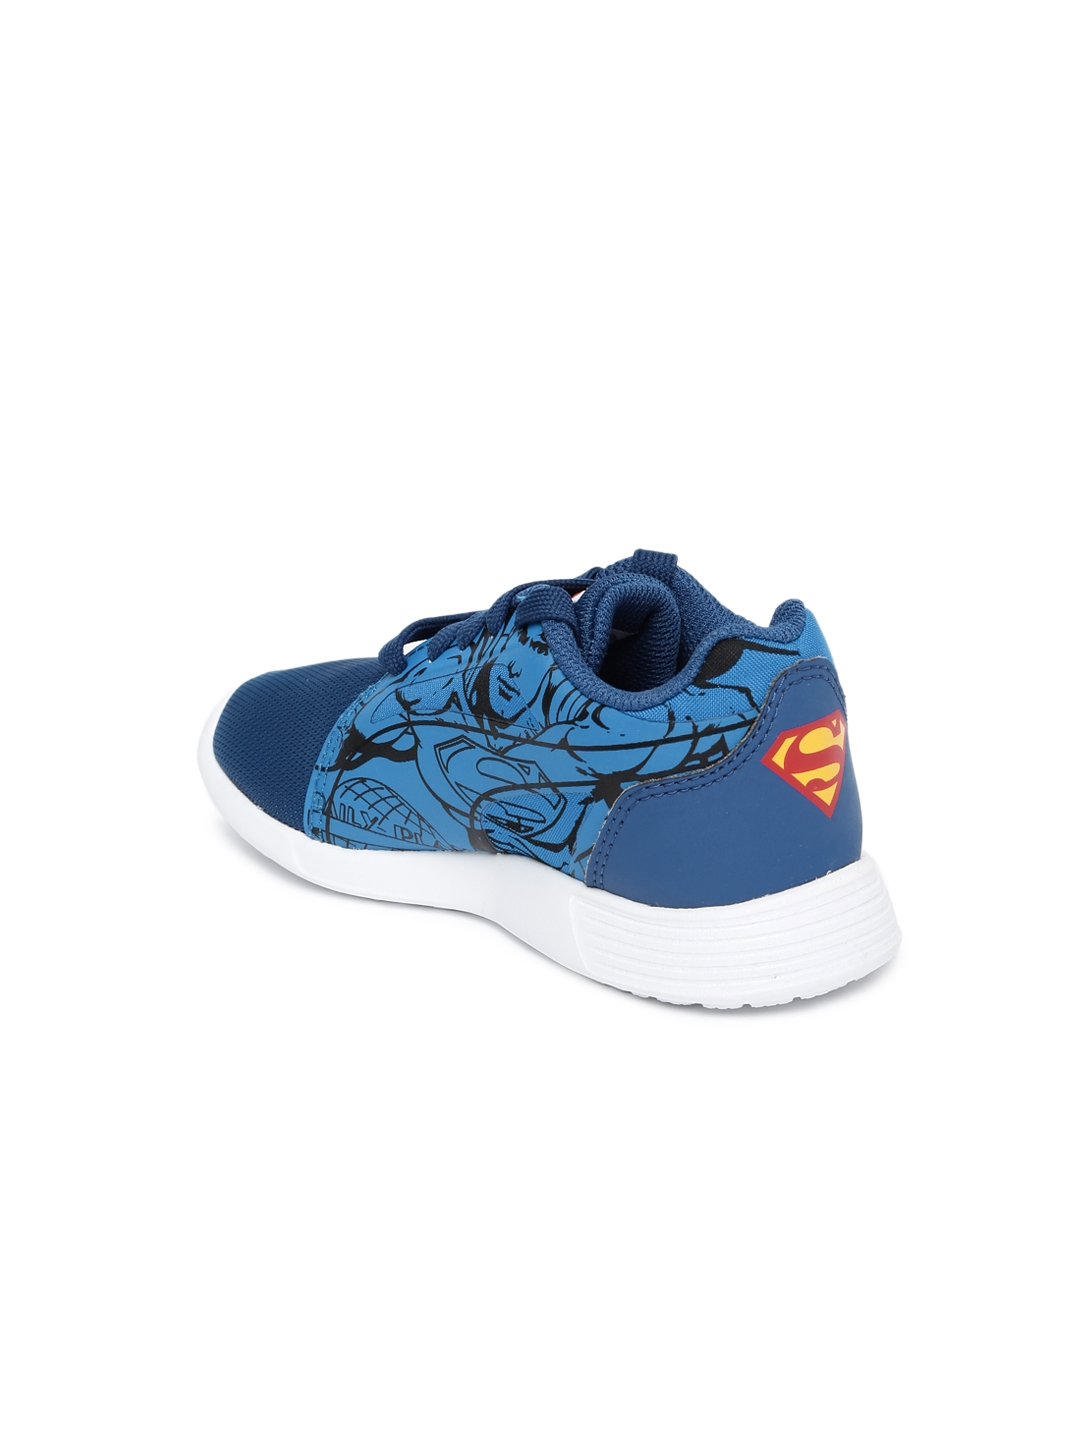 Puma Kids Blue Printed Superman ST Trainer Evo PS Limoges Sneakers 36a6887a4